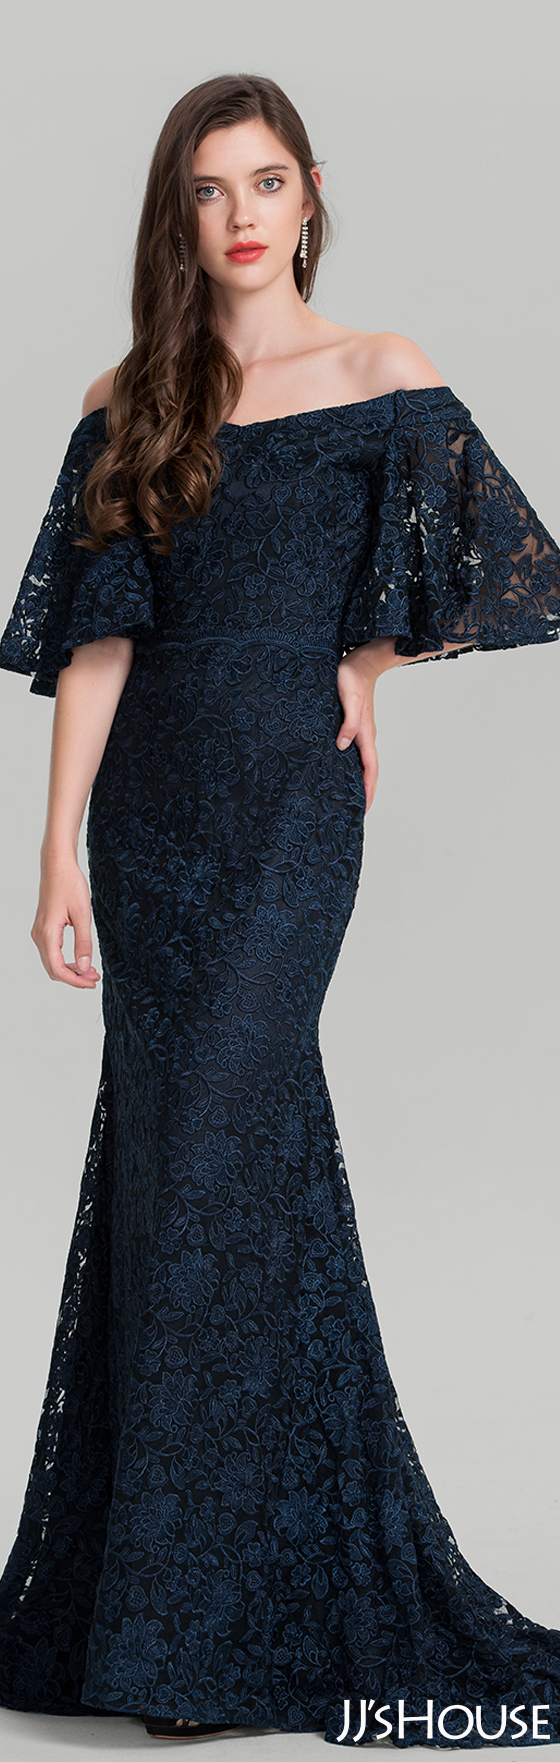 Trumpet/Mermaid Off-the-Shoulder Sweep Train Lace Evening Dress ...